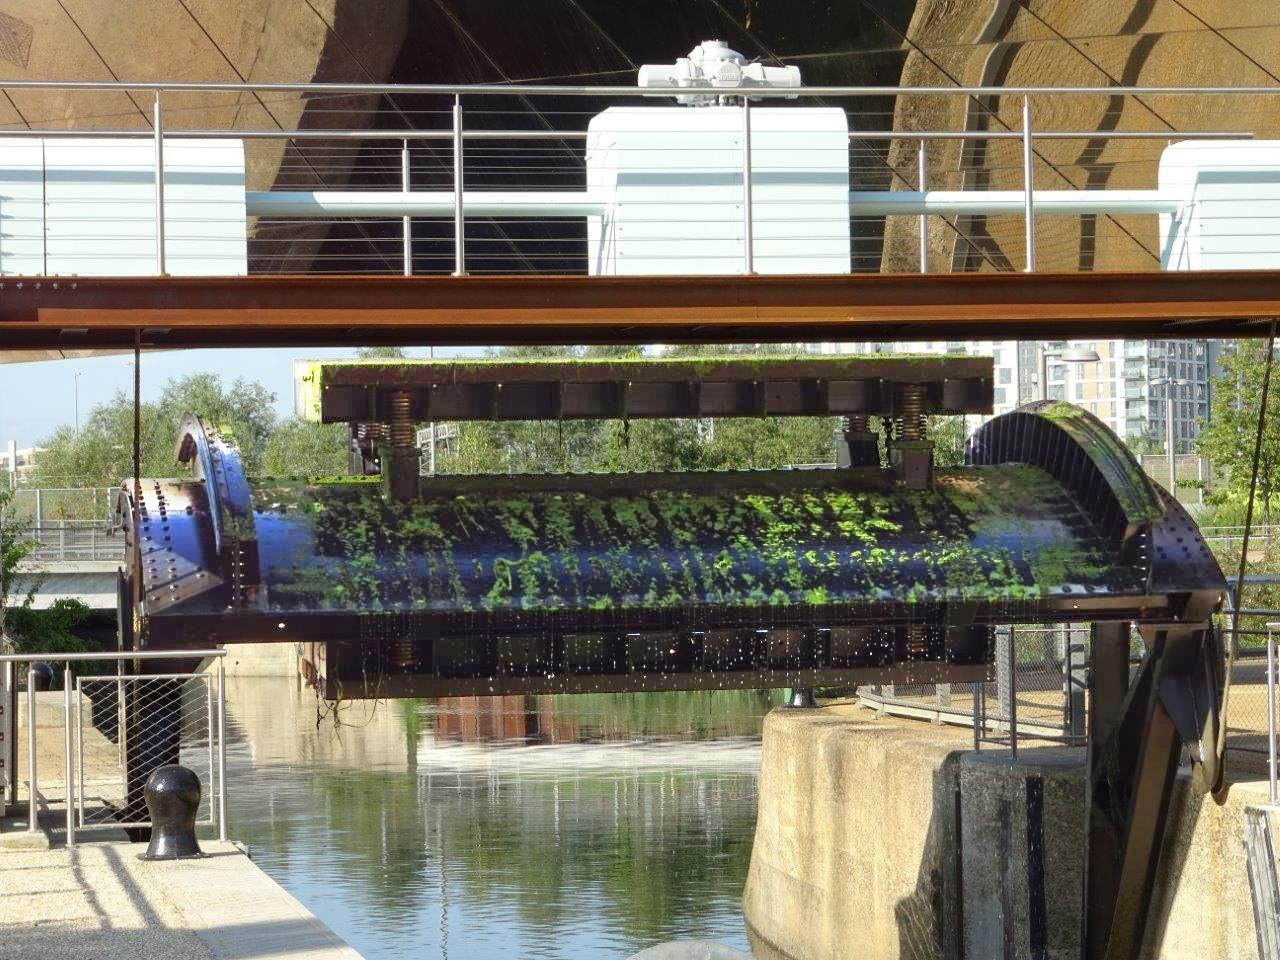 Rotork provides bespoke solution for London's Carpenter's Lock Restoration project